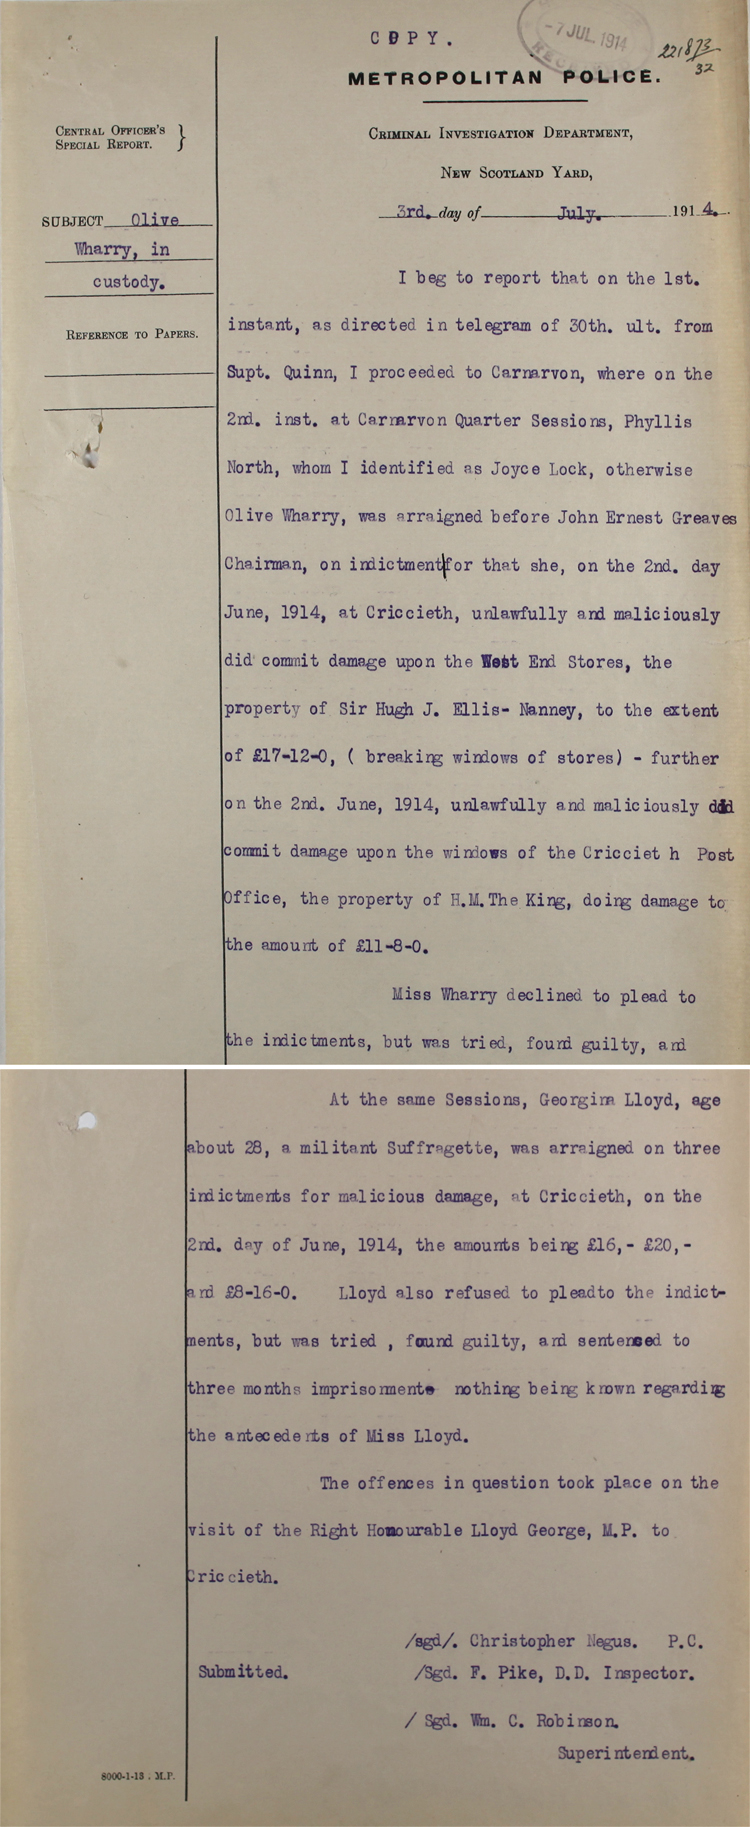 Extracts from a police report on Olive Wharry, 3 July 1914 (HO 144/1205/221873)